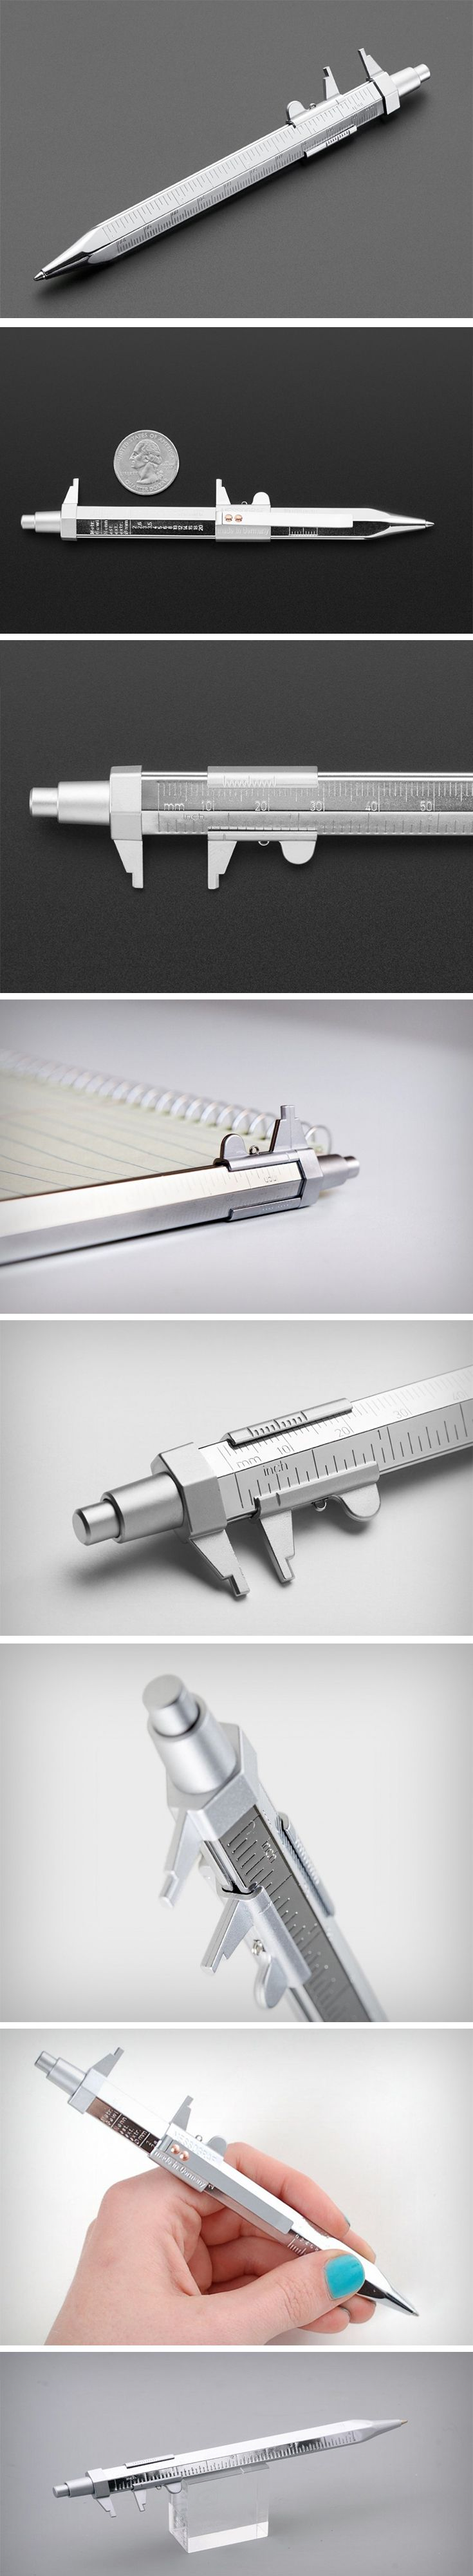 For the perfectionist at heart, or a designer who loves their numbers (design engineers, I'm looking at you!), the Messograf pen does something no other writing instrument does. It puts a pretty capable caliper ruler on a pen! With the ability to give you measurements up to the 100th of a millimeter, thanks to its vernier scale that slides up and down the chromium-plated brass body of the pen. BUY NOW!